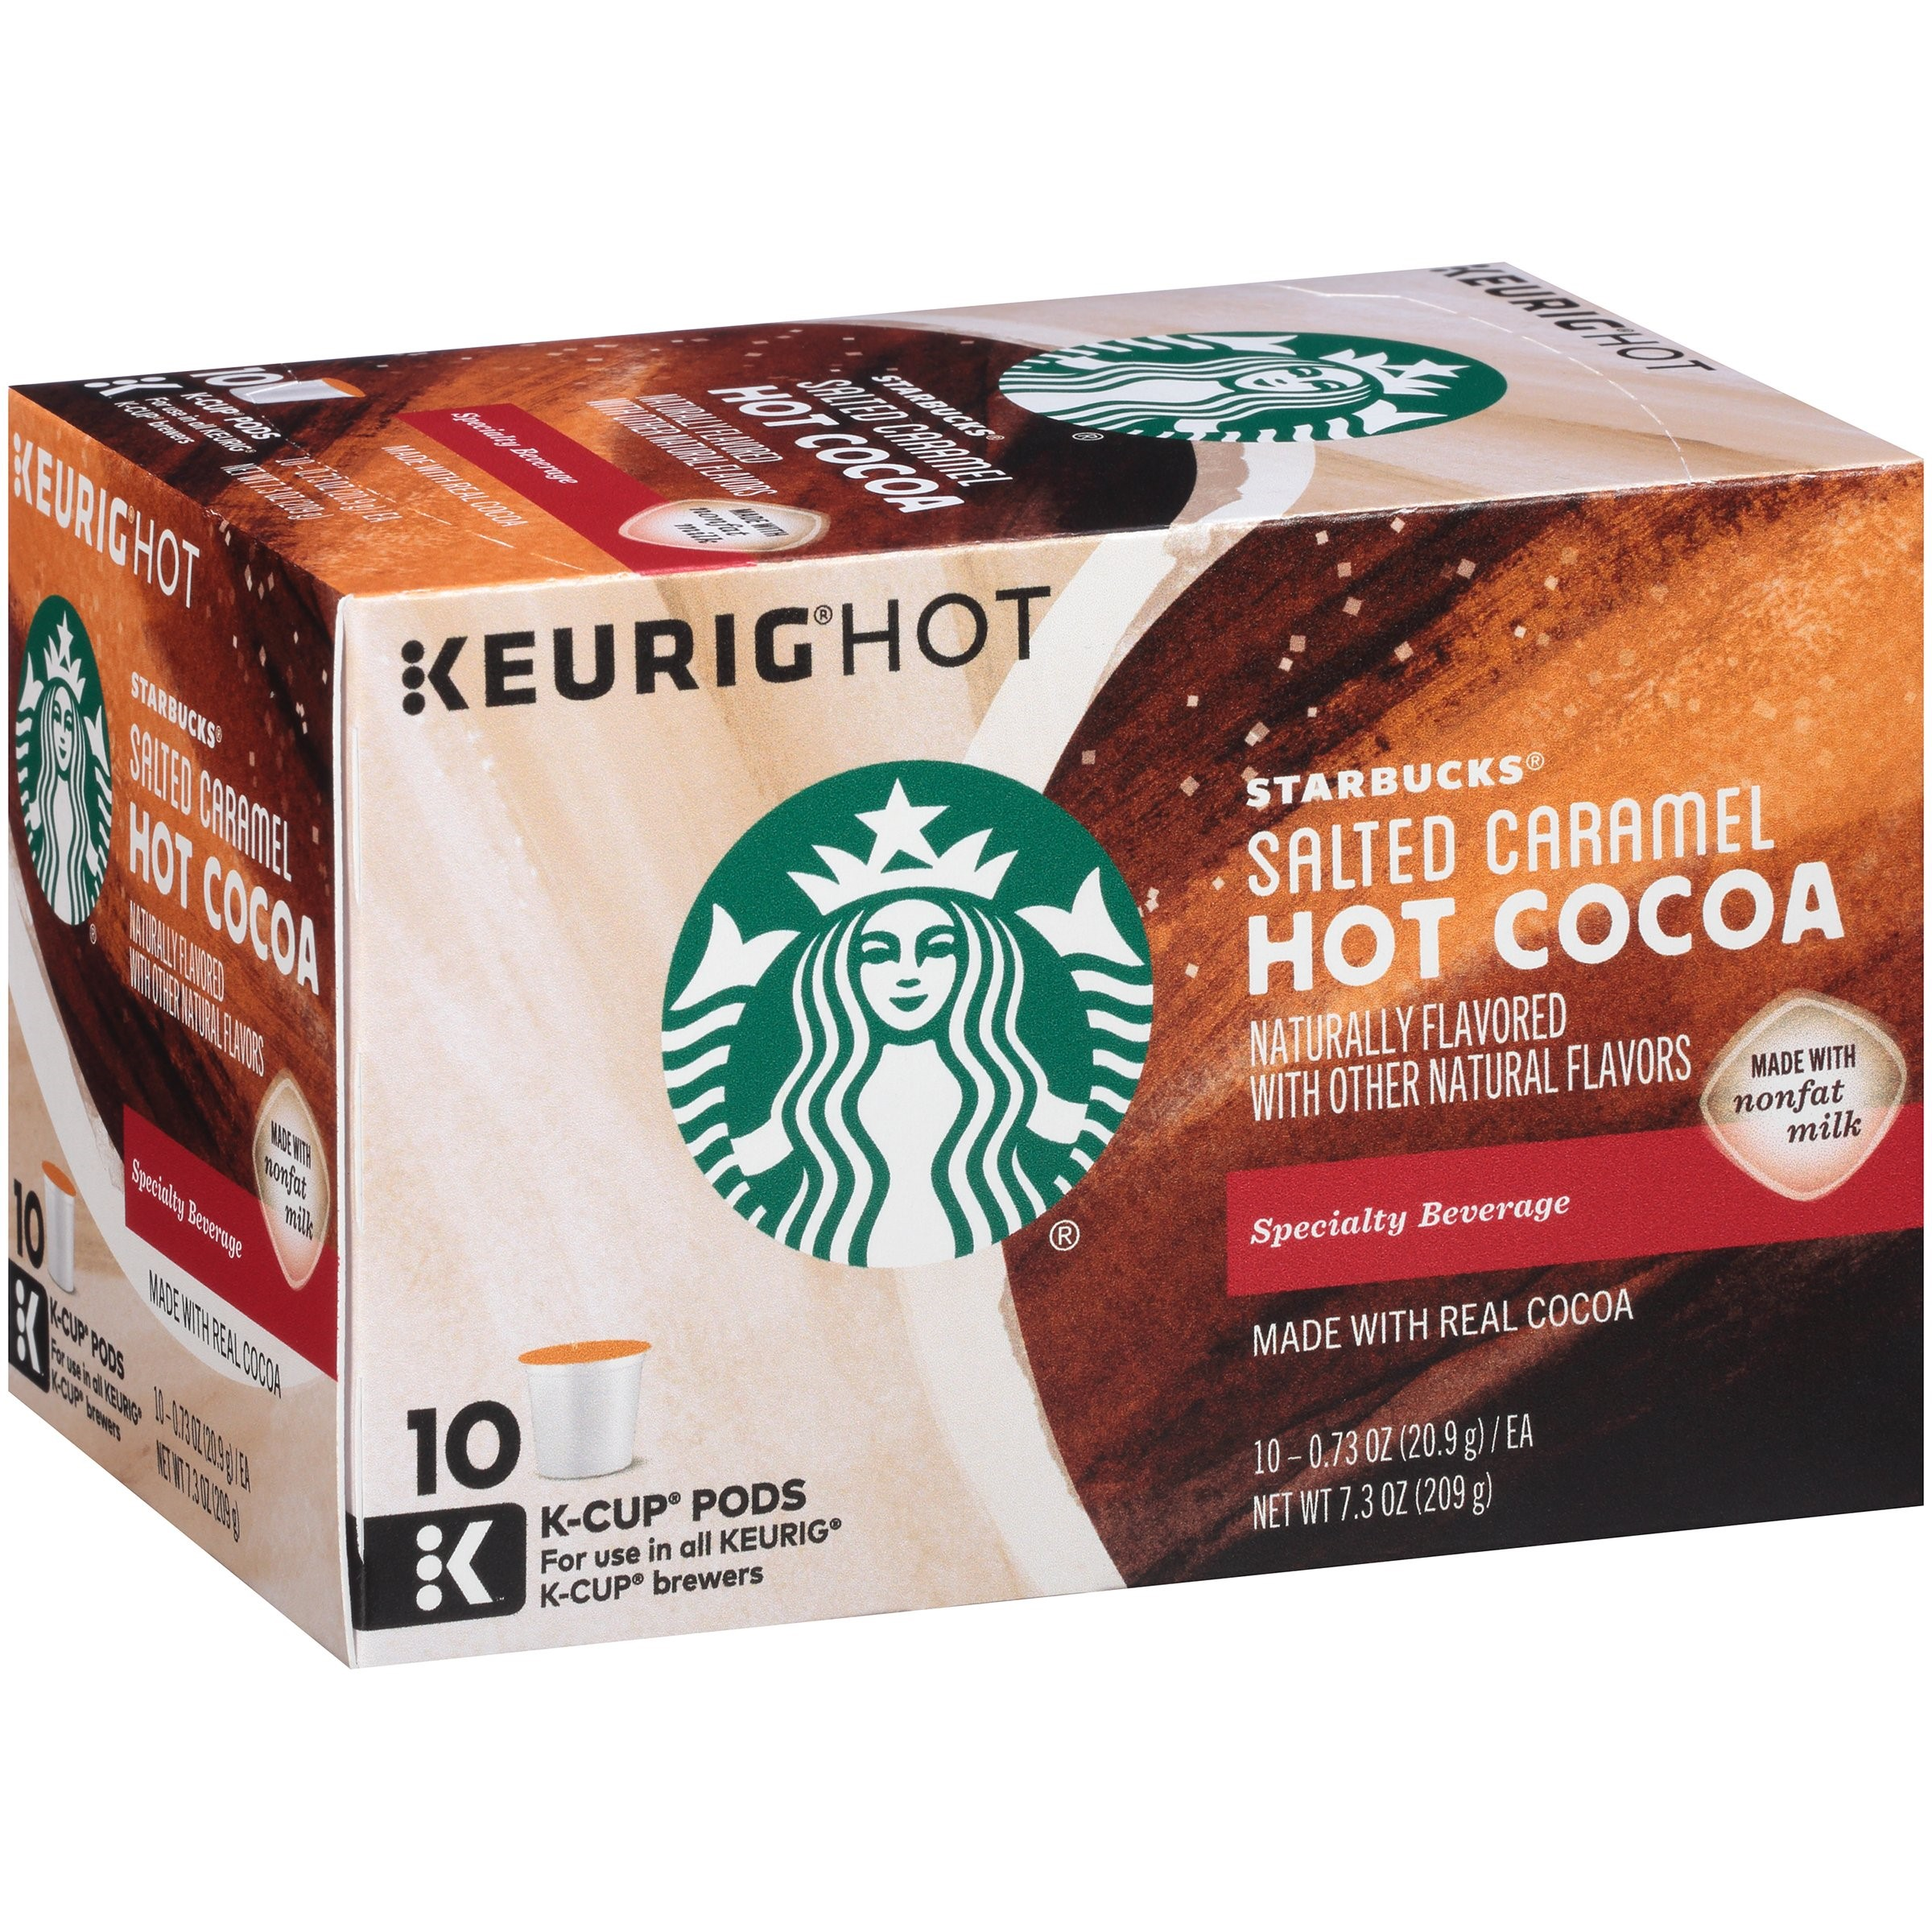 Starbucks Salted Caramel Keurig K-Cups Hot Cocoa, 10 Count